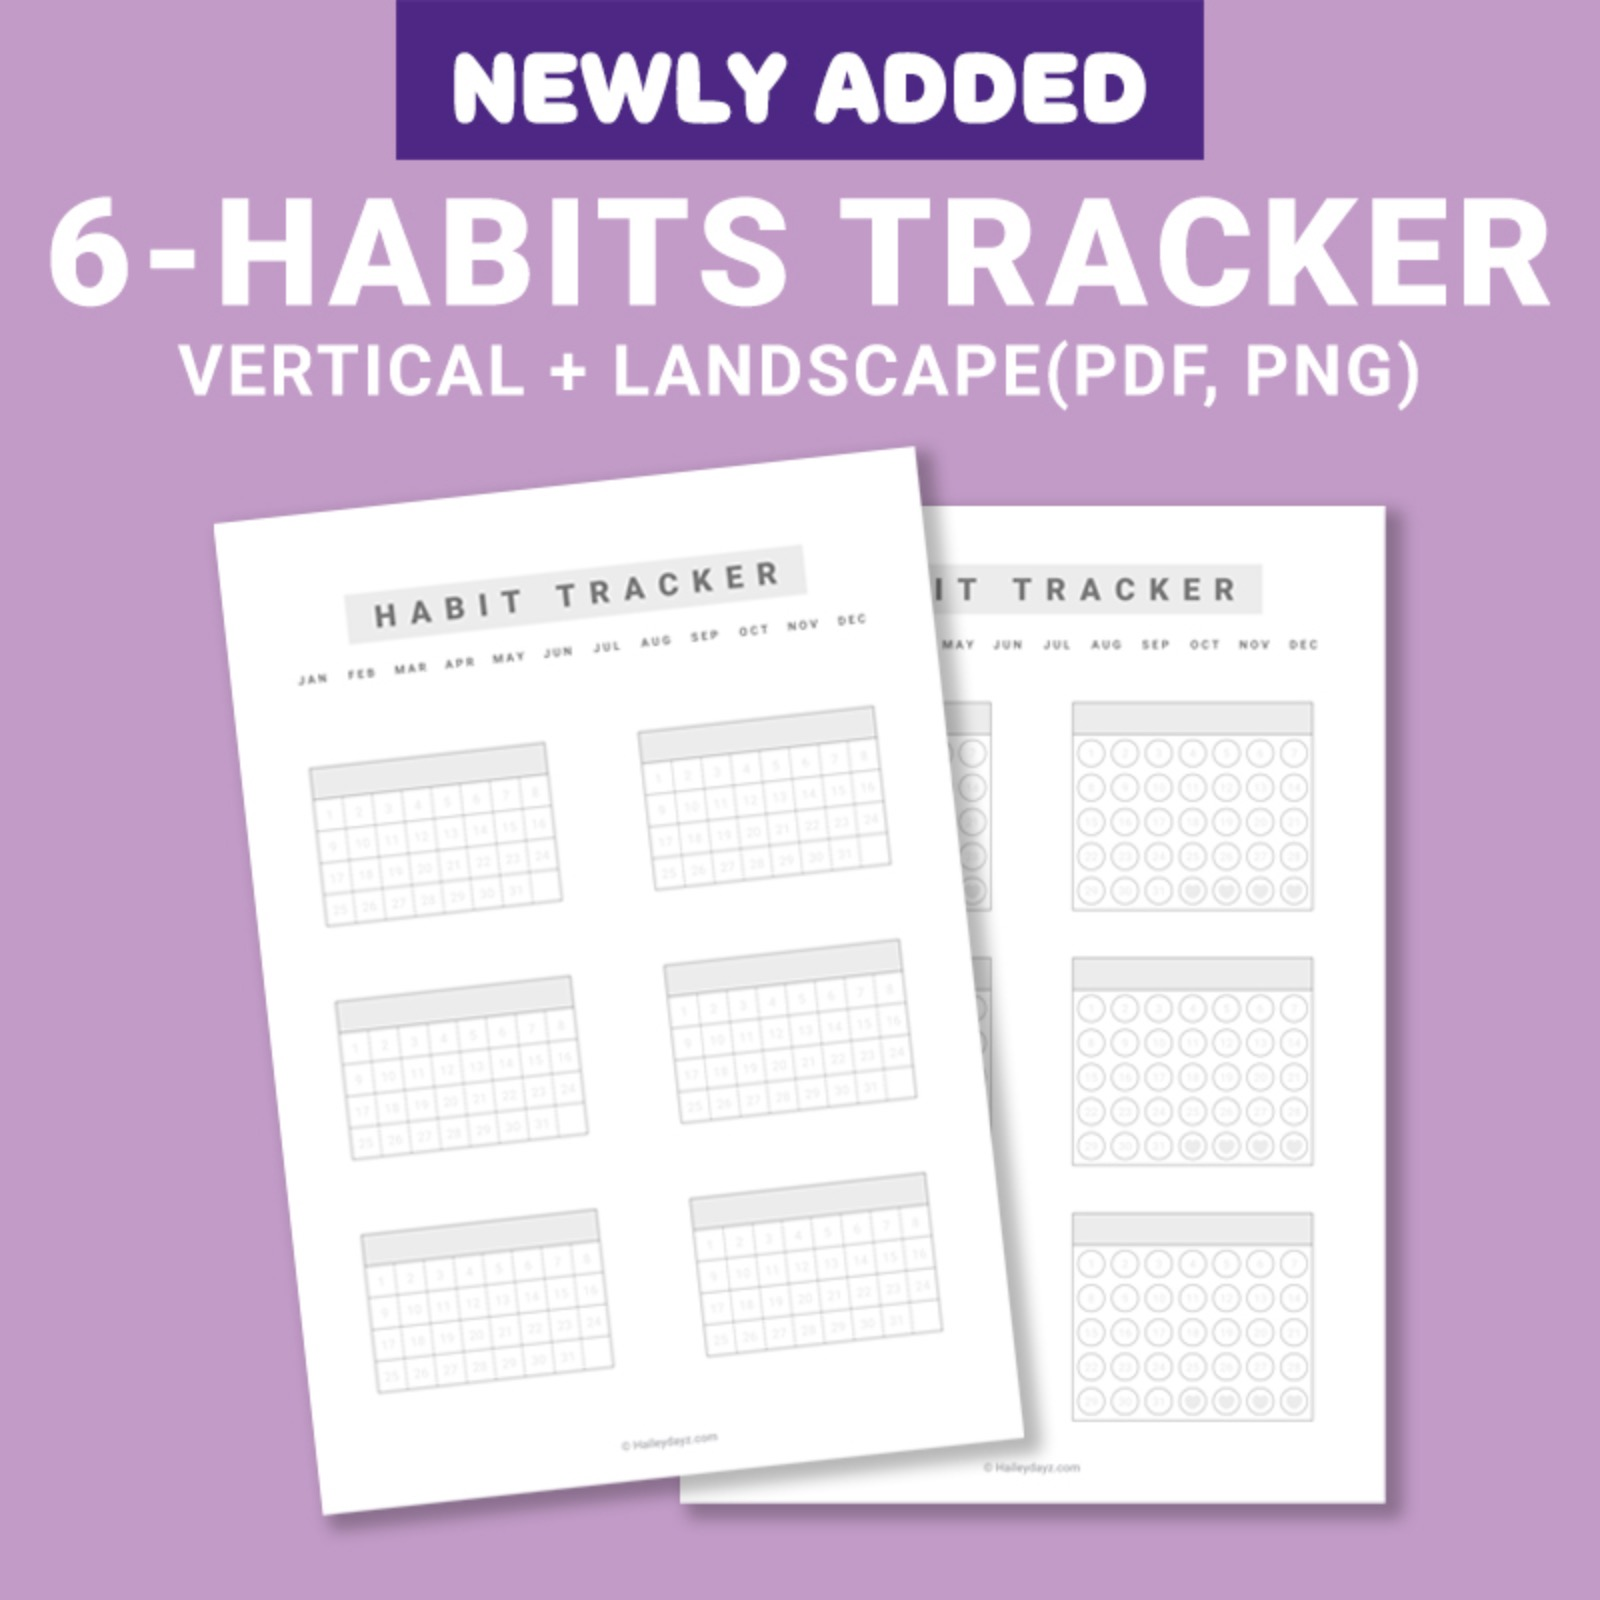 Digital habit tacker template(A4 size)